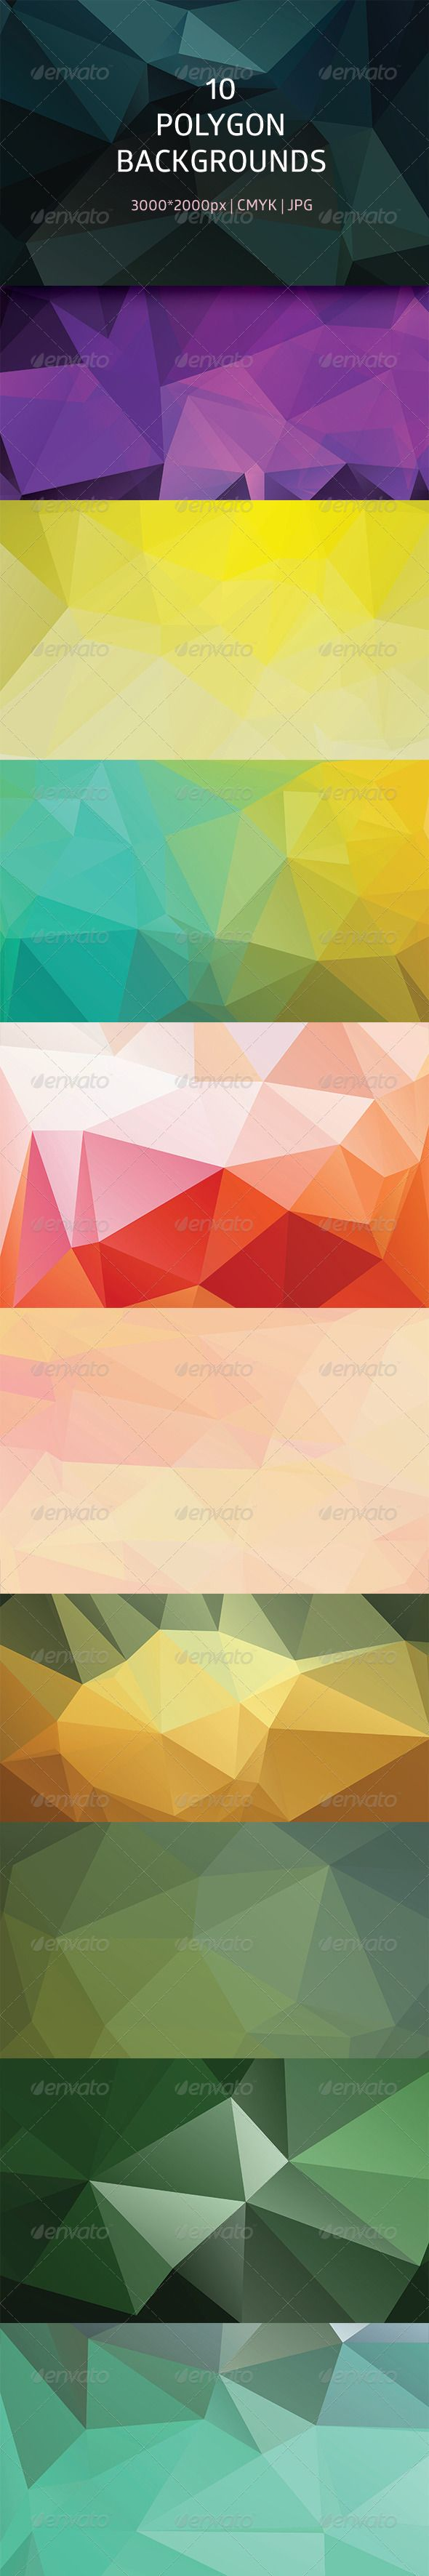 Polygon Abstract Backgrounds - Abstract Backgrounds